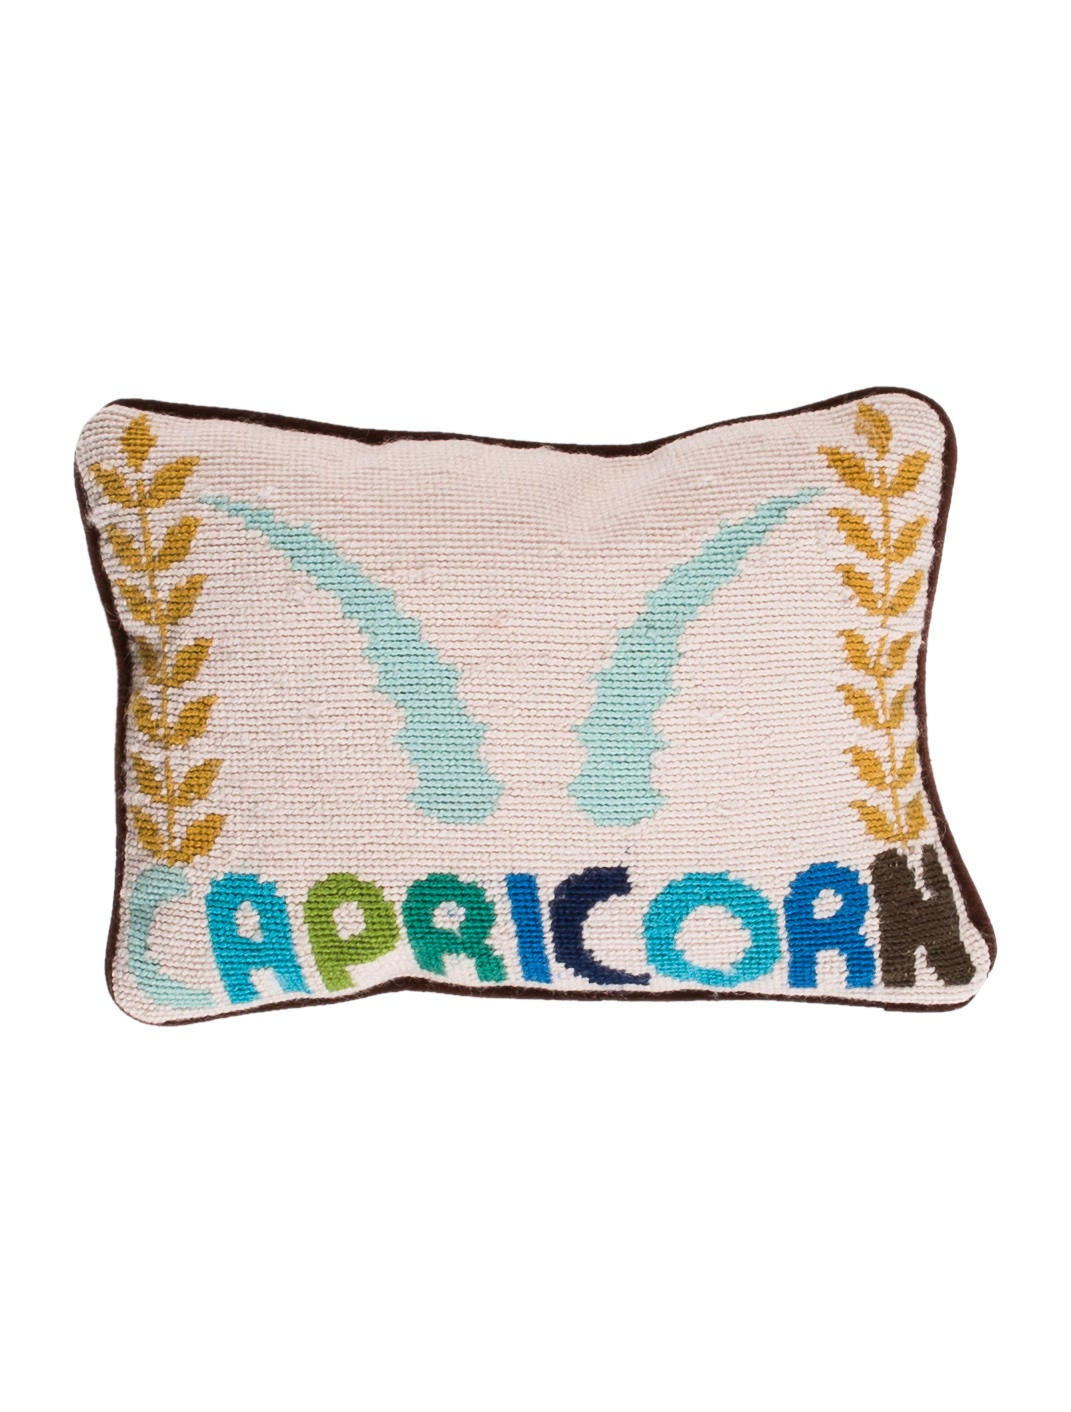 Throw Pillows Justice : Jonathan Adler Capricorn Needlepoint Throw Pillow - Bedding And Bath - JTADL20739 The RealReal